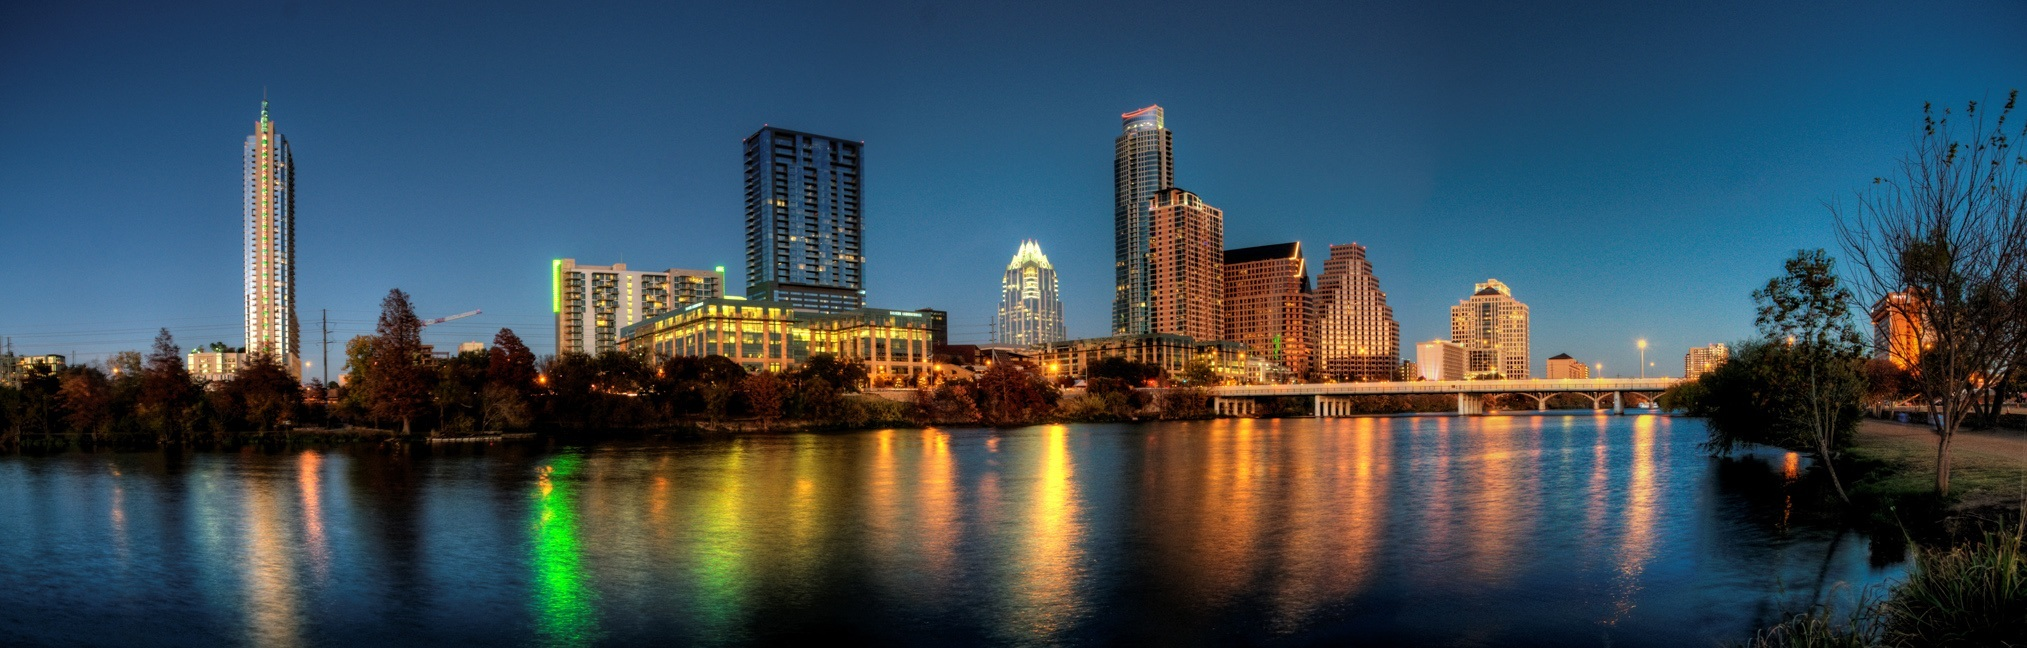 Austin Web Development - skyline